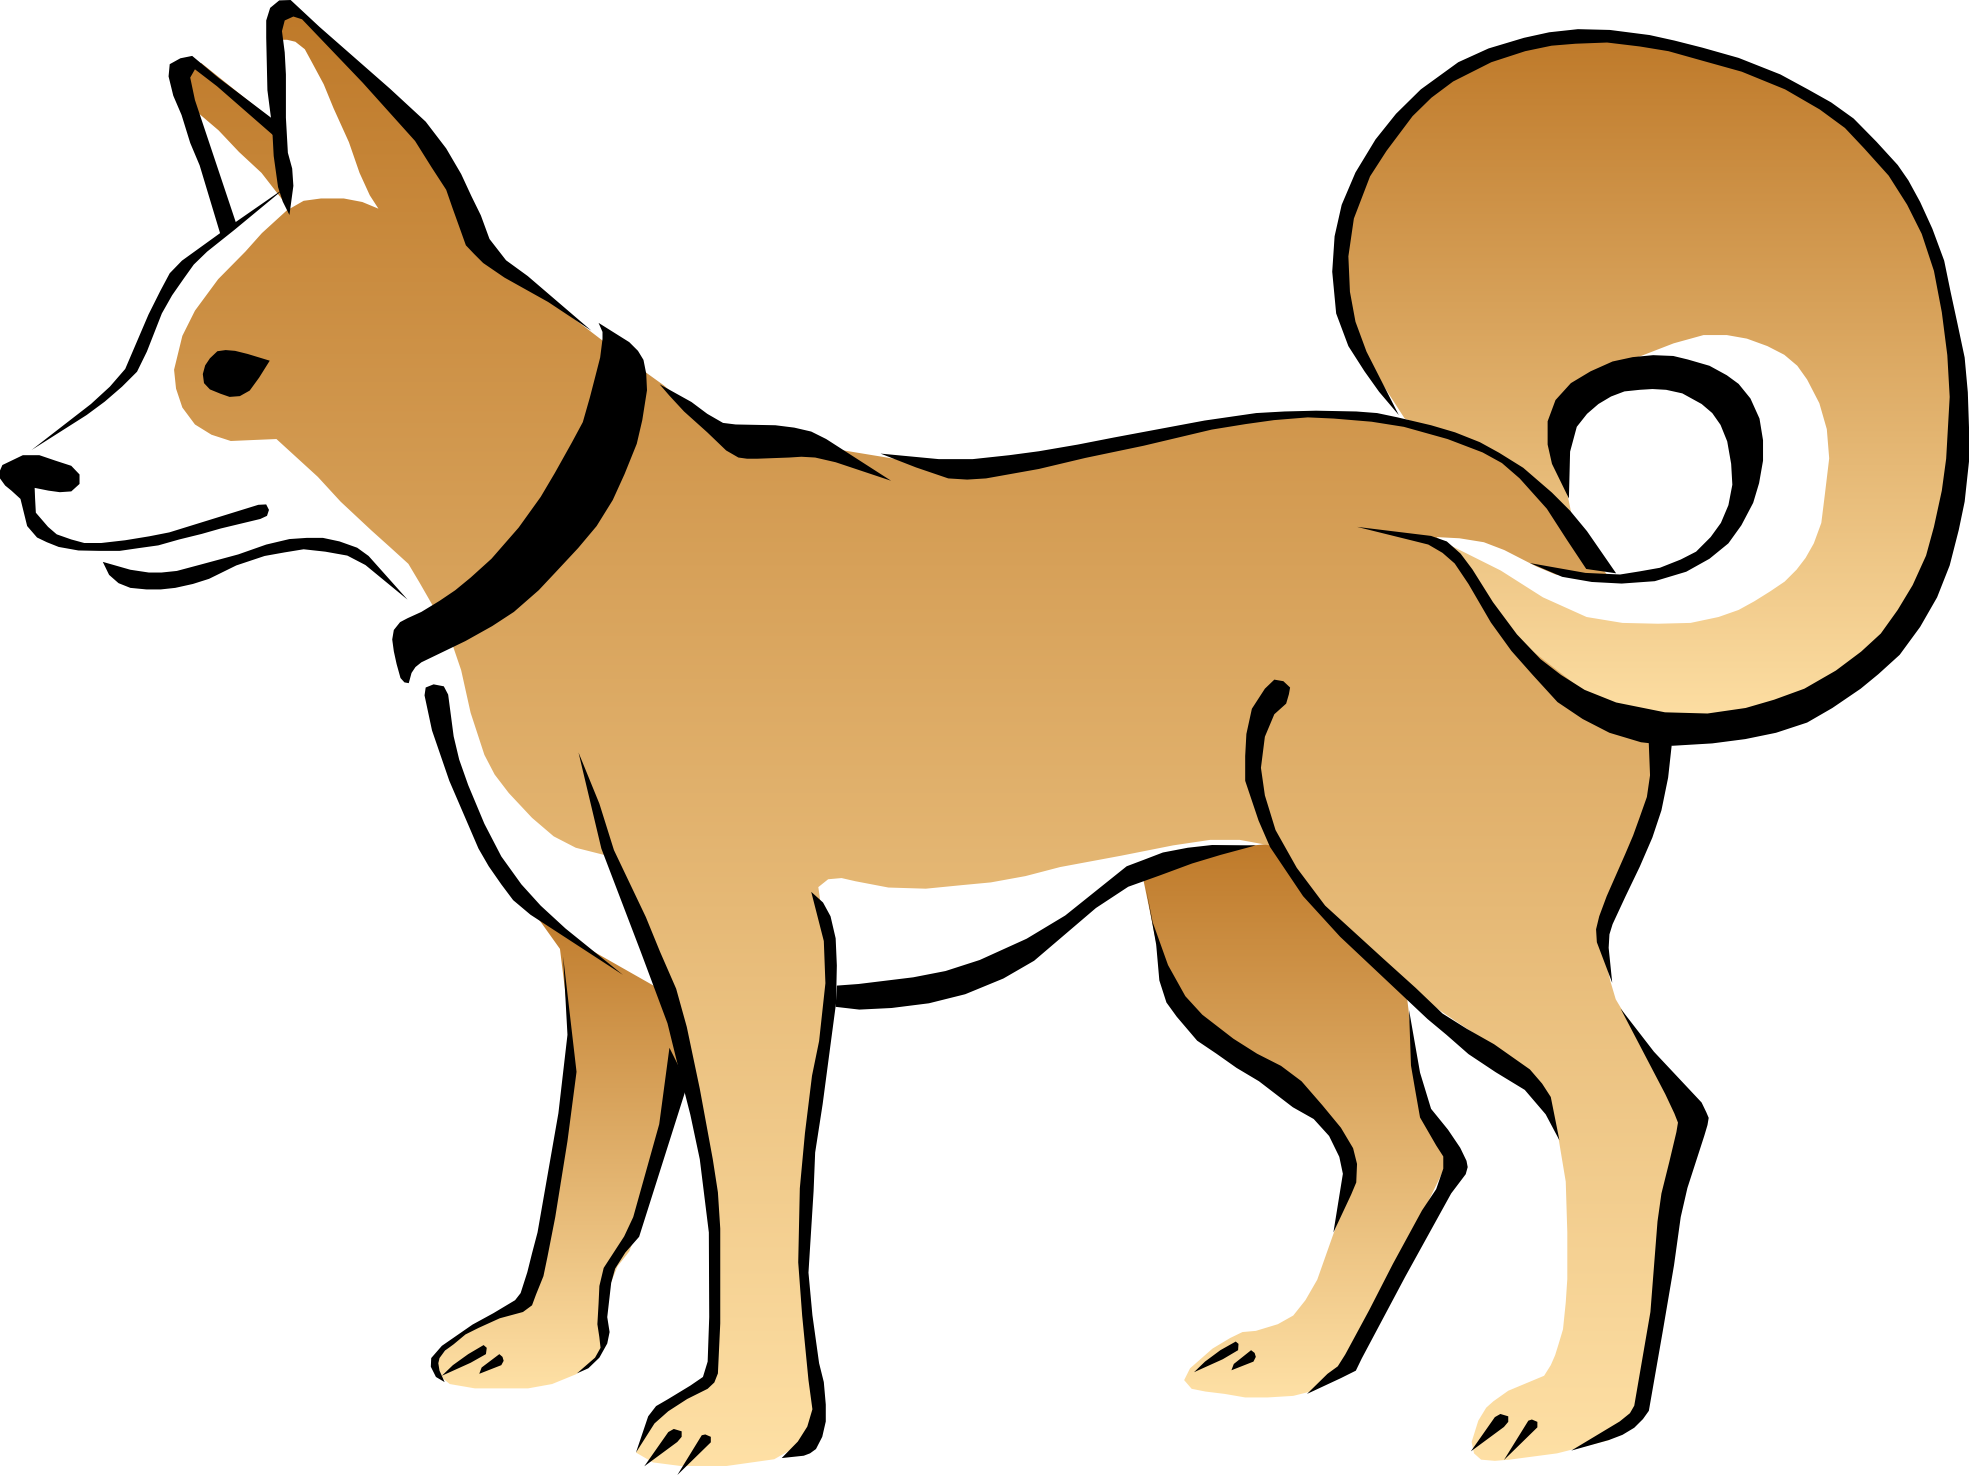 Wagging dog tail clipart png transparent stock Cute Dog And Cat Clip Art | Clipart Panda - Free Clipart Images ... png transparent stock